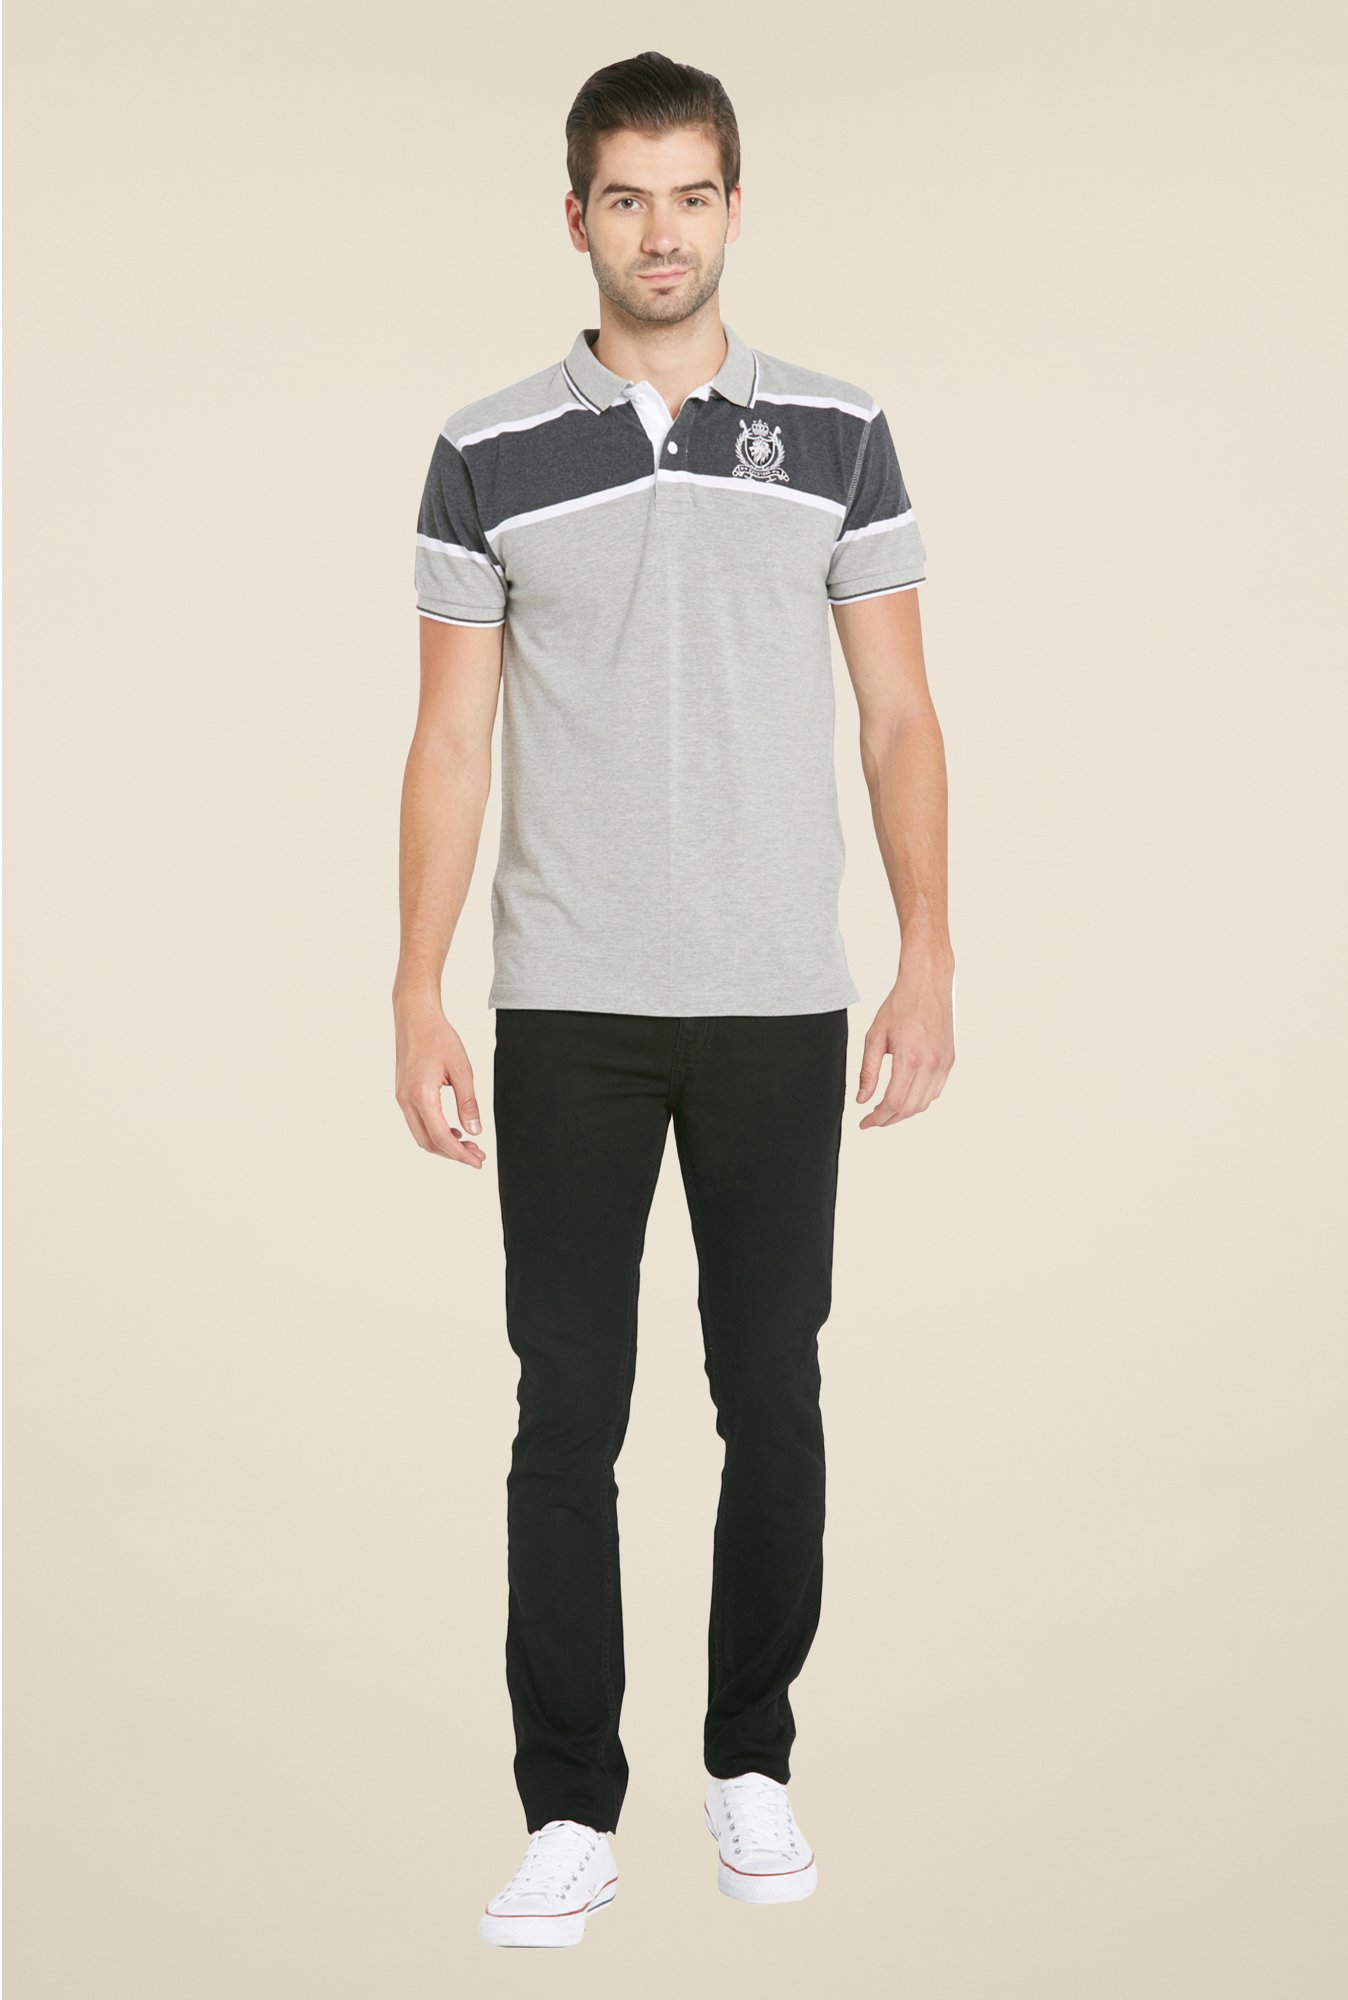 Globus Grey Solid Polo T Shirt